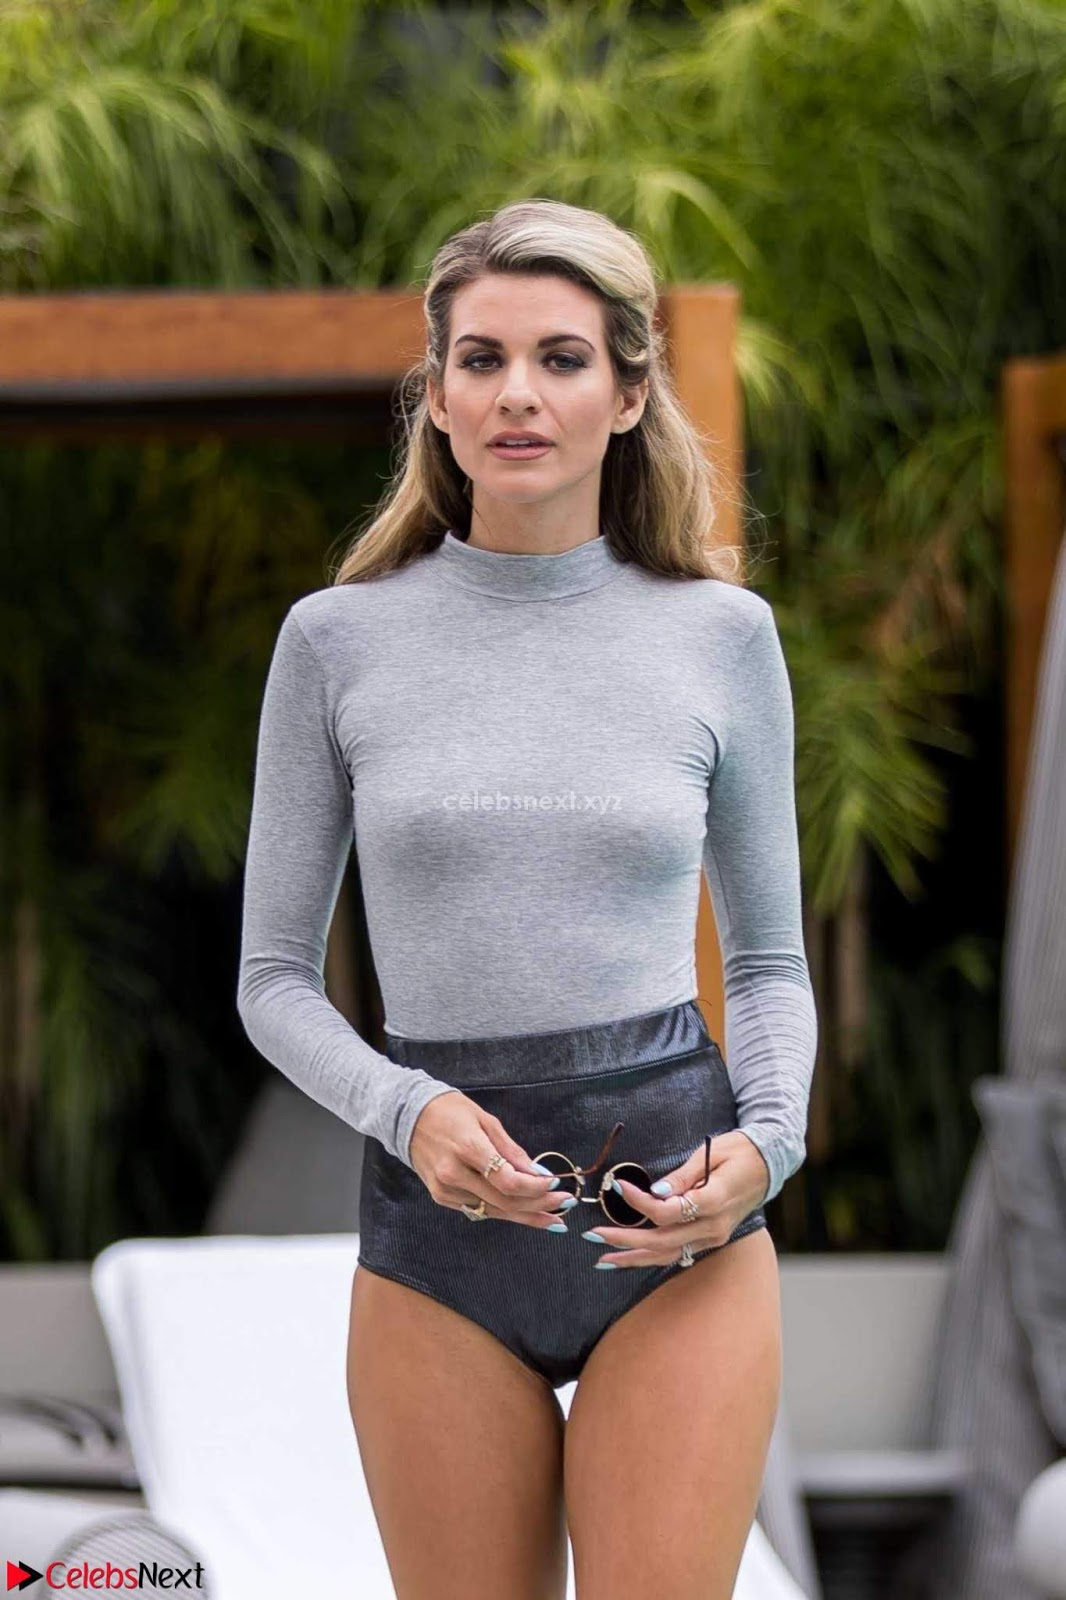 Rachel McCord Beach Side Tight T-Shirt and Panites Hot Huge Boobs ~ CelebsNext.xyz Exclusive Celebrity Pics